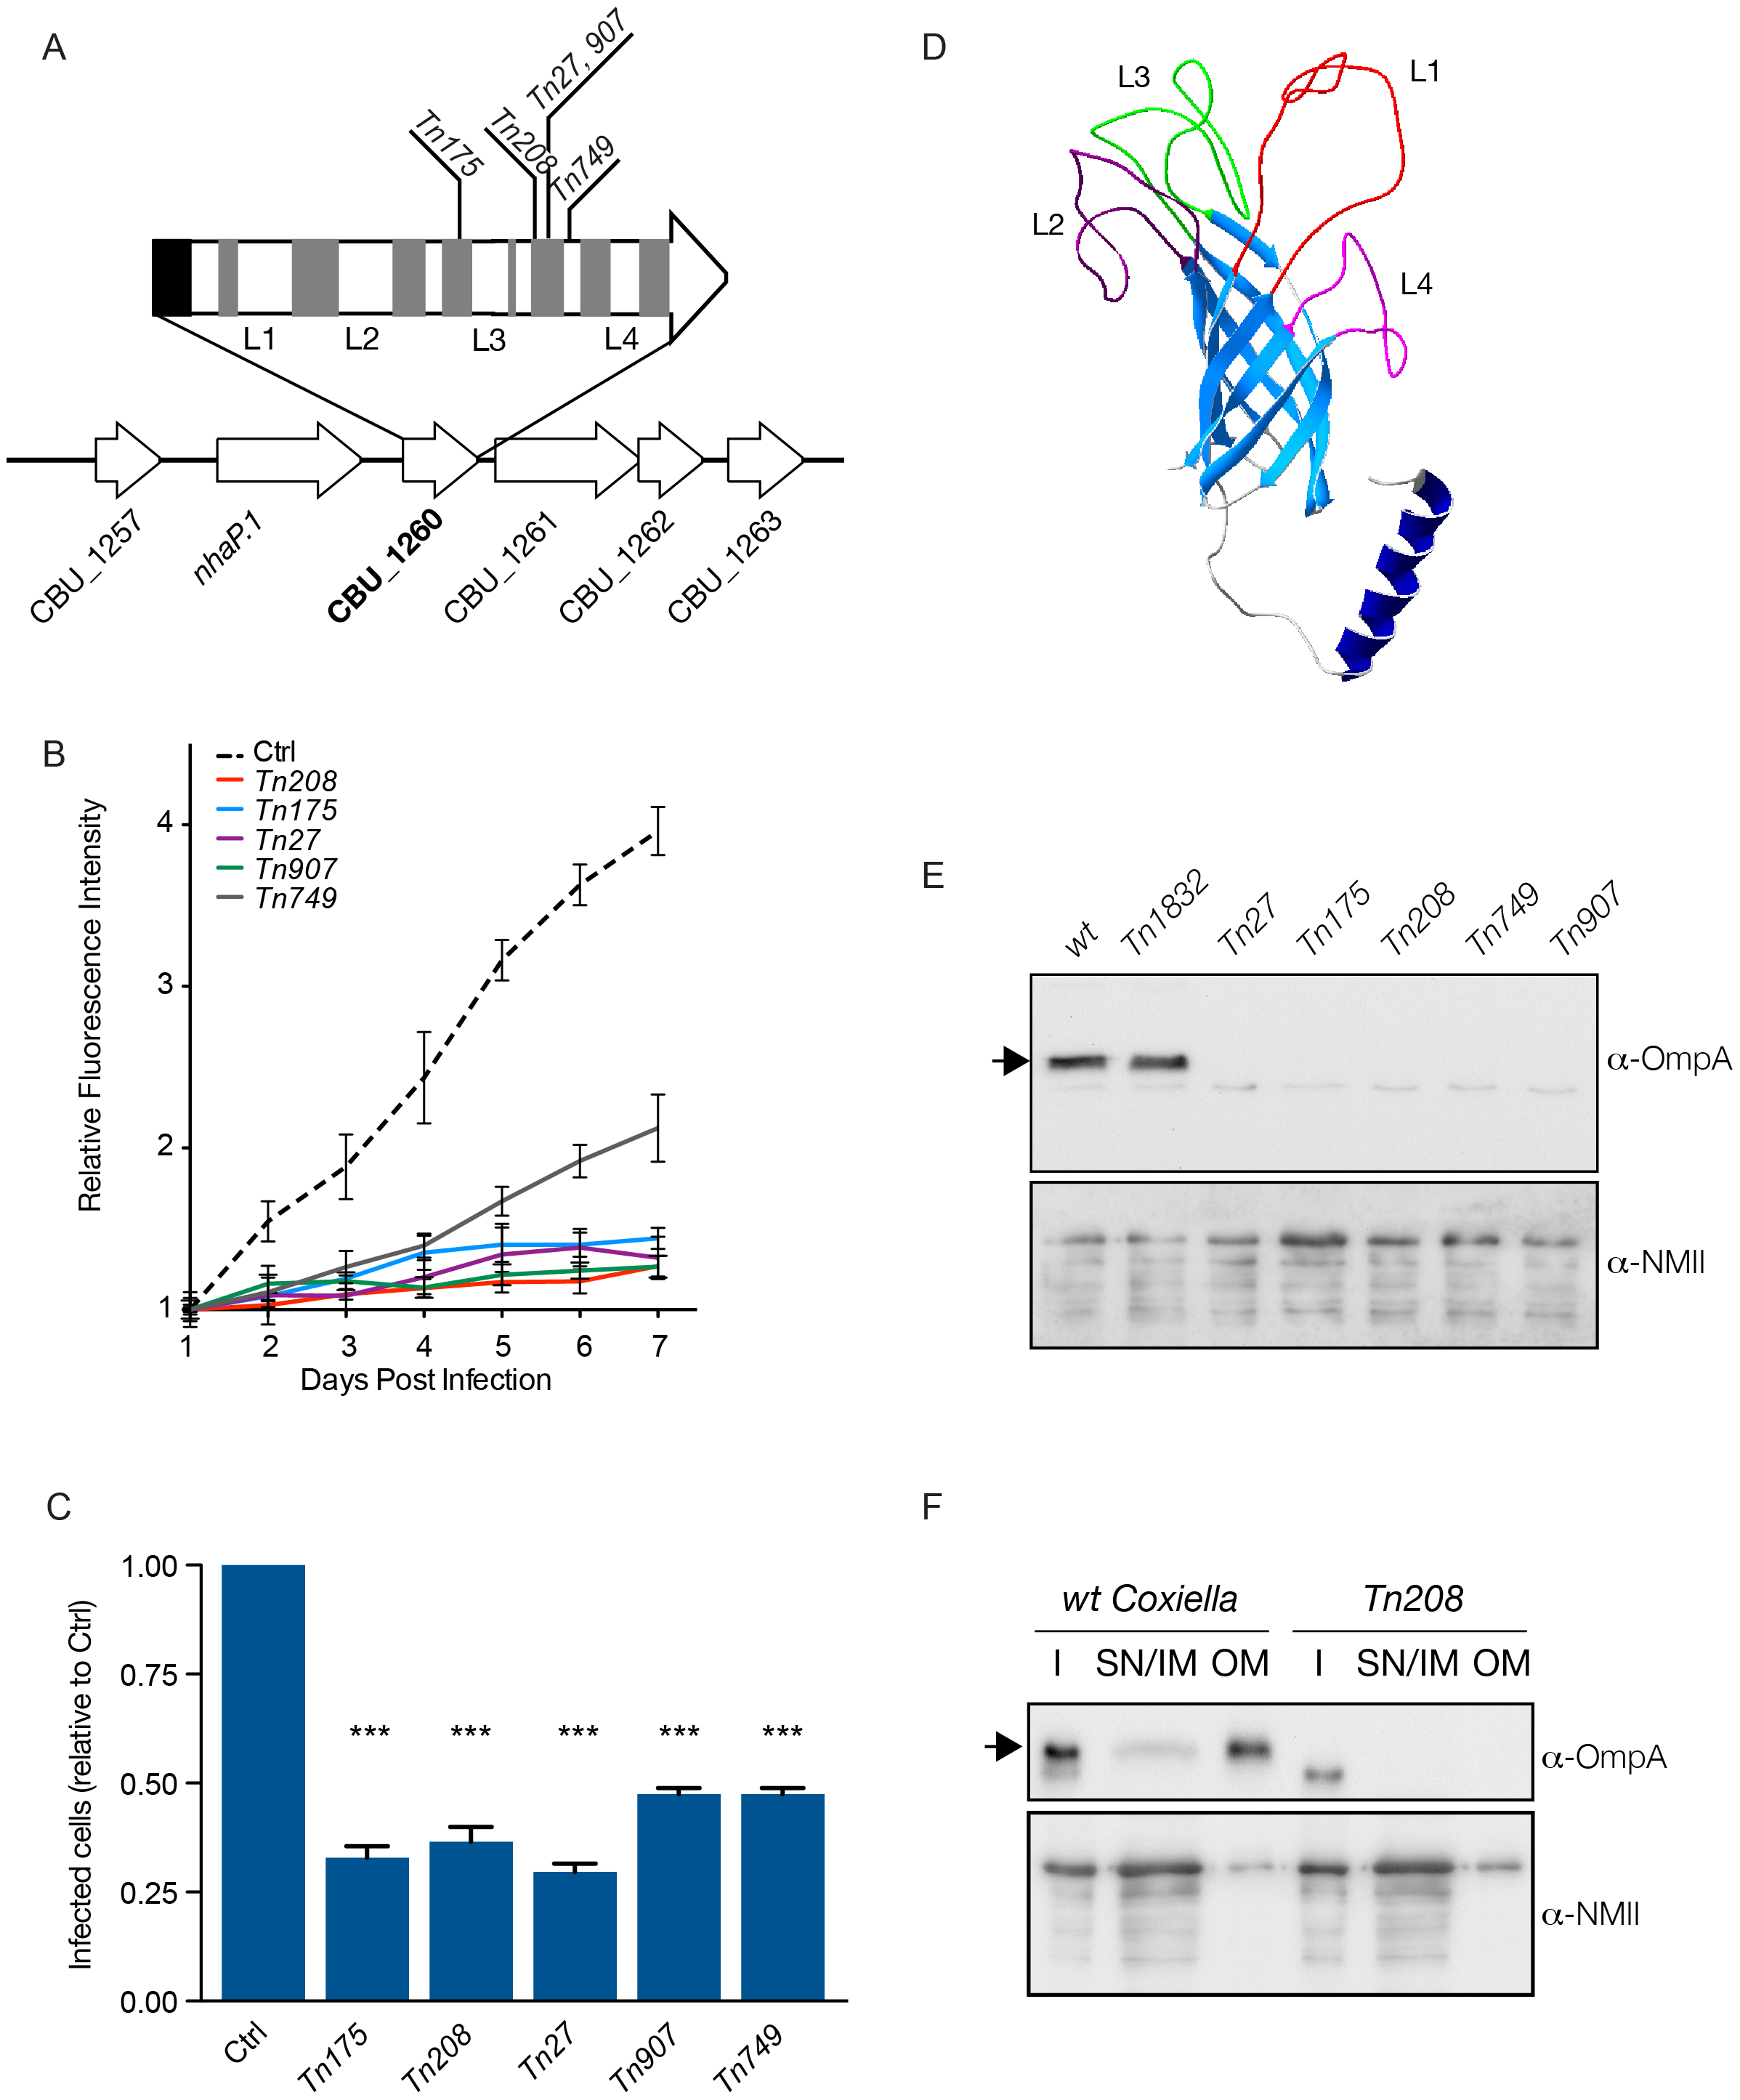 Characterization of CBU_1260 (OmpA), a <i>Coxiella</i> protein involved in host cell invasion.